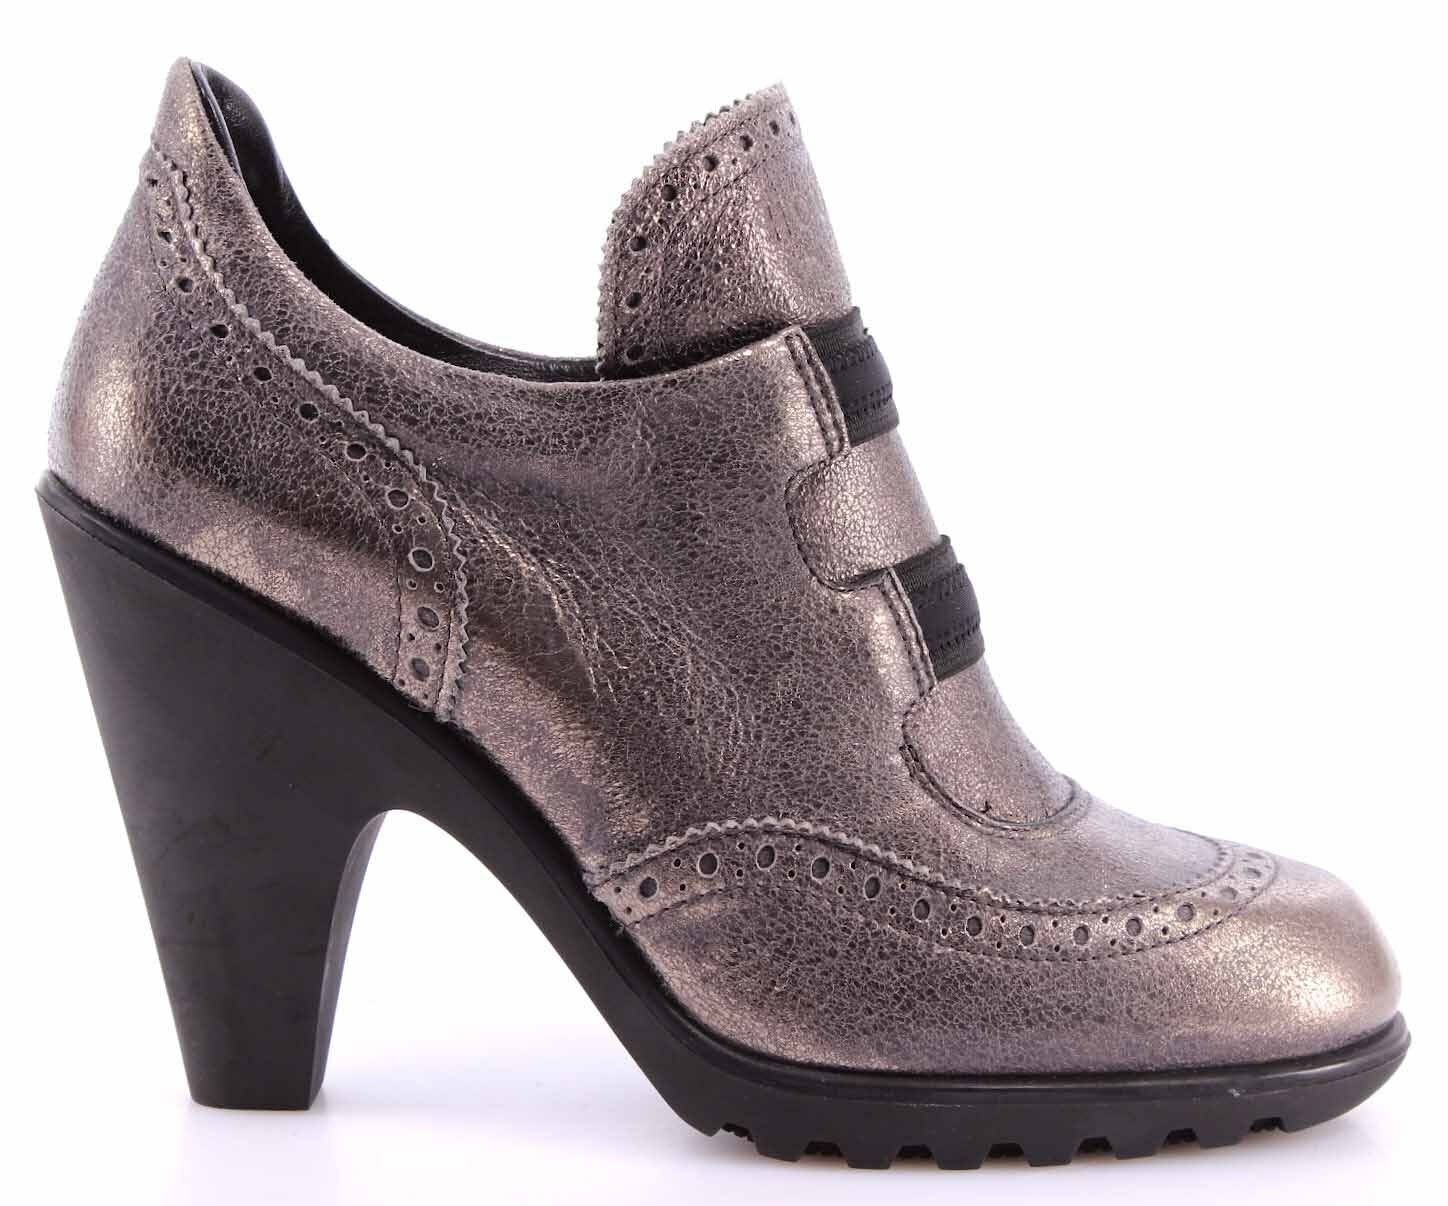 Damen Schuhe Brogues Pumps HOGAN BY KARL LAGERFELD Leder Made In Italy Luxus